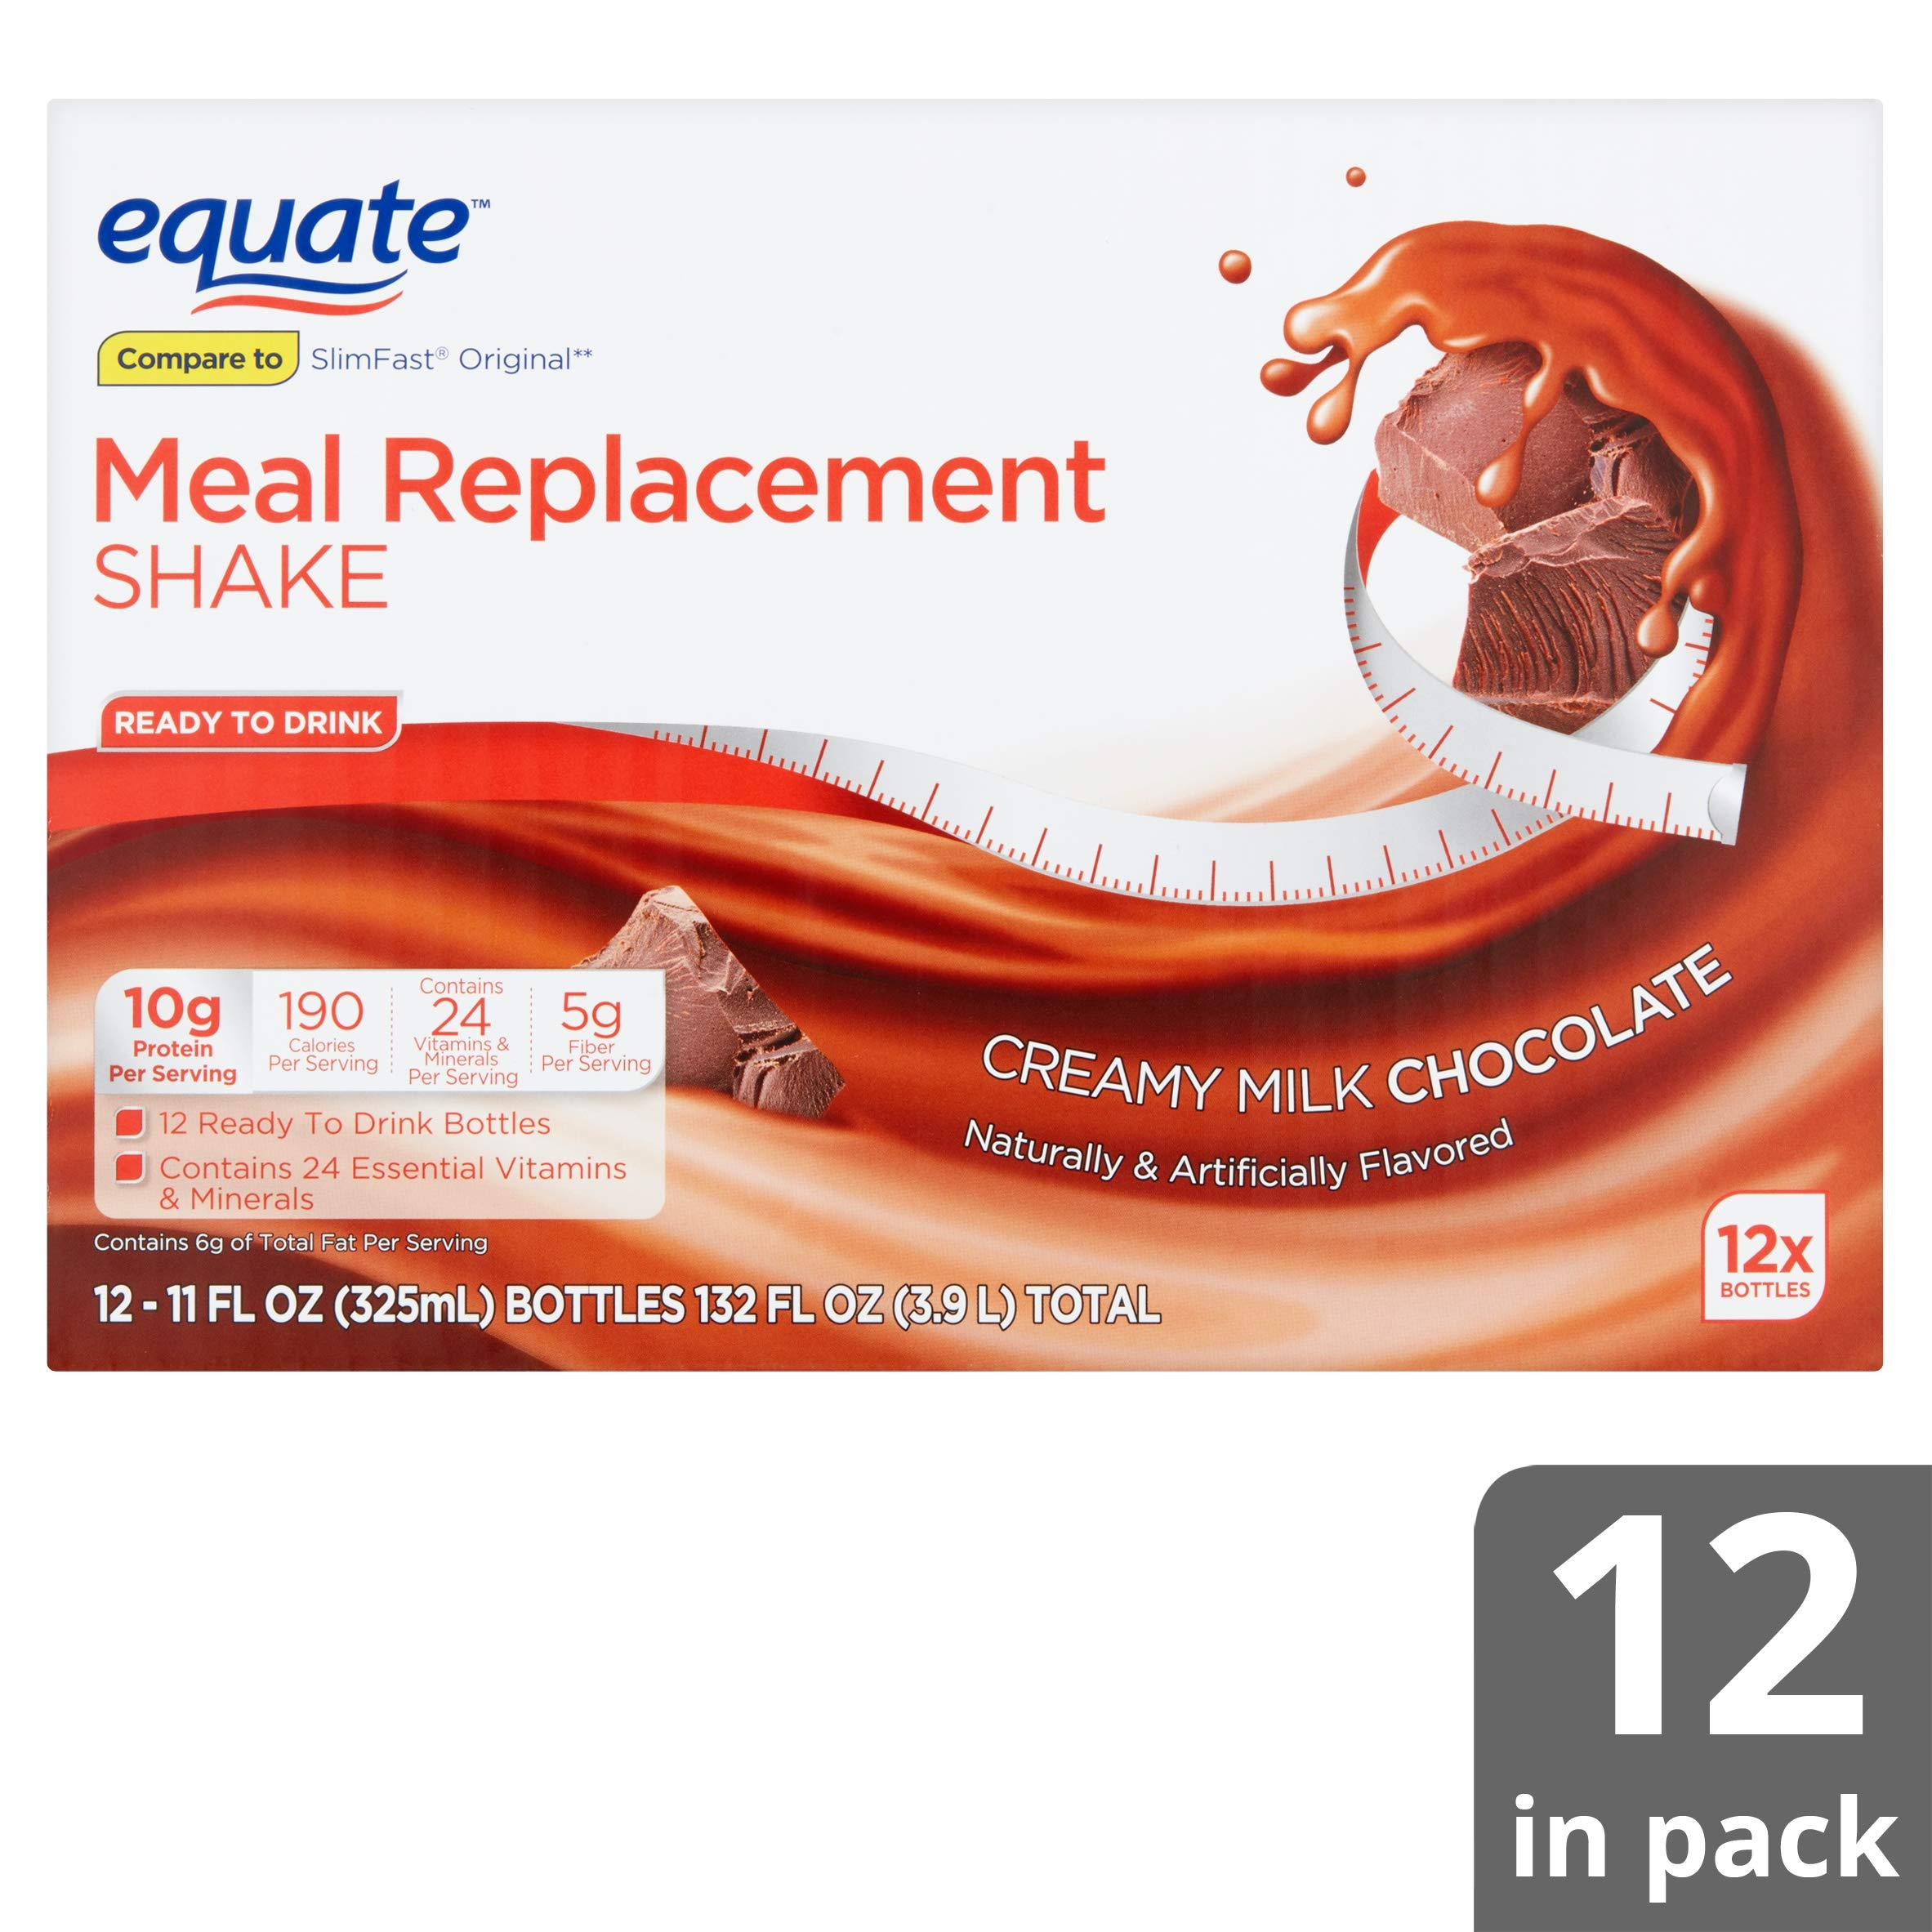 Equate Meal Replacement Shake, Creamy Milk Chocolate, 11 fl oz, 12 Count (Pack of 4) by Equate's (Image #1)